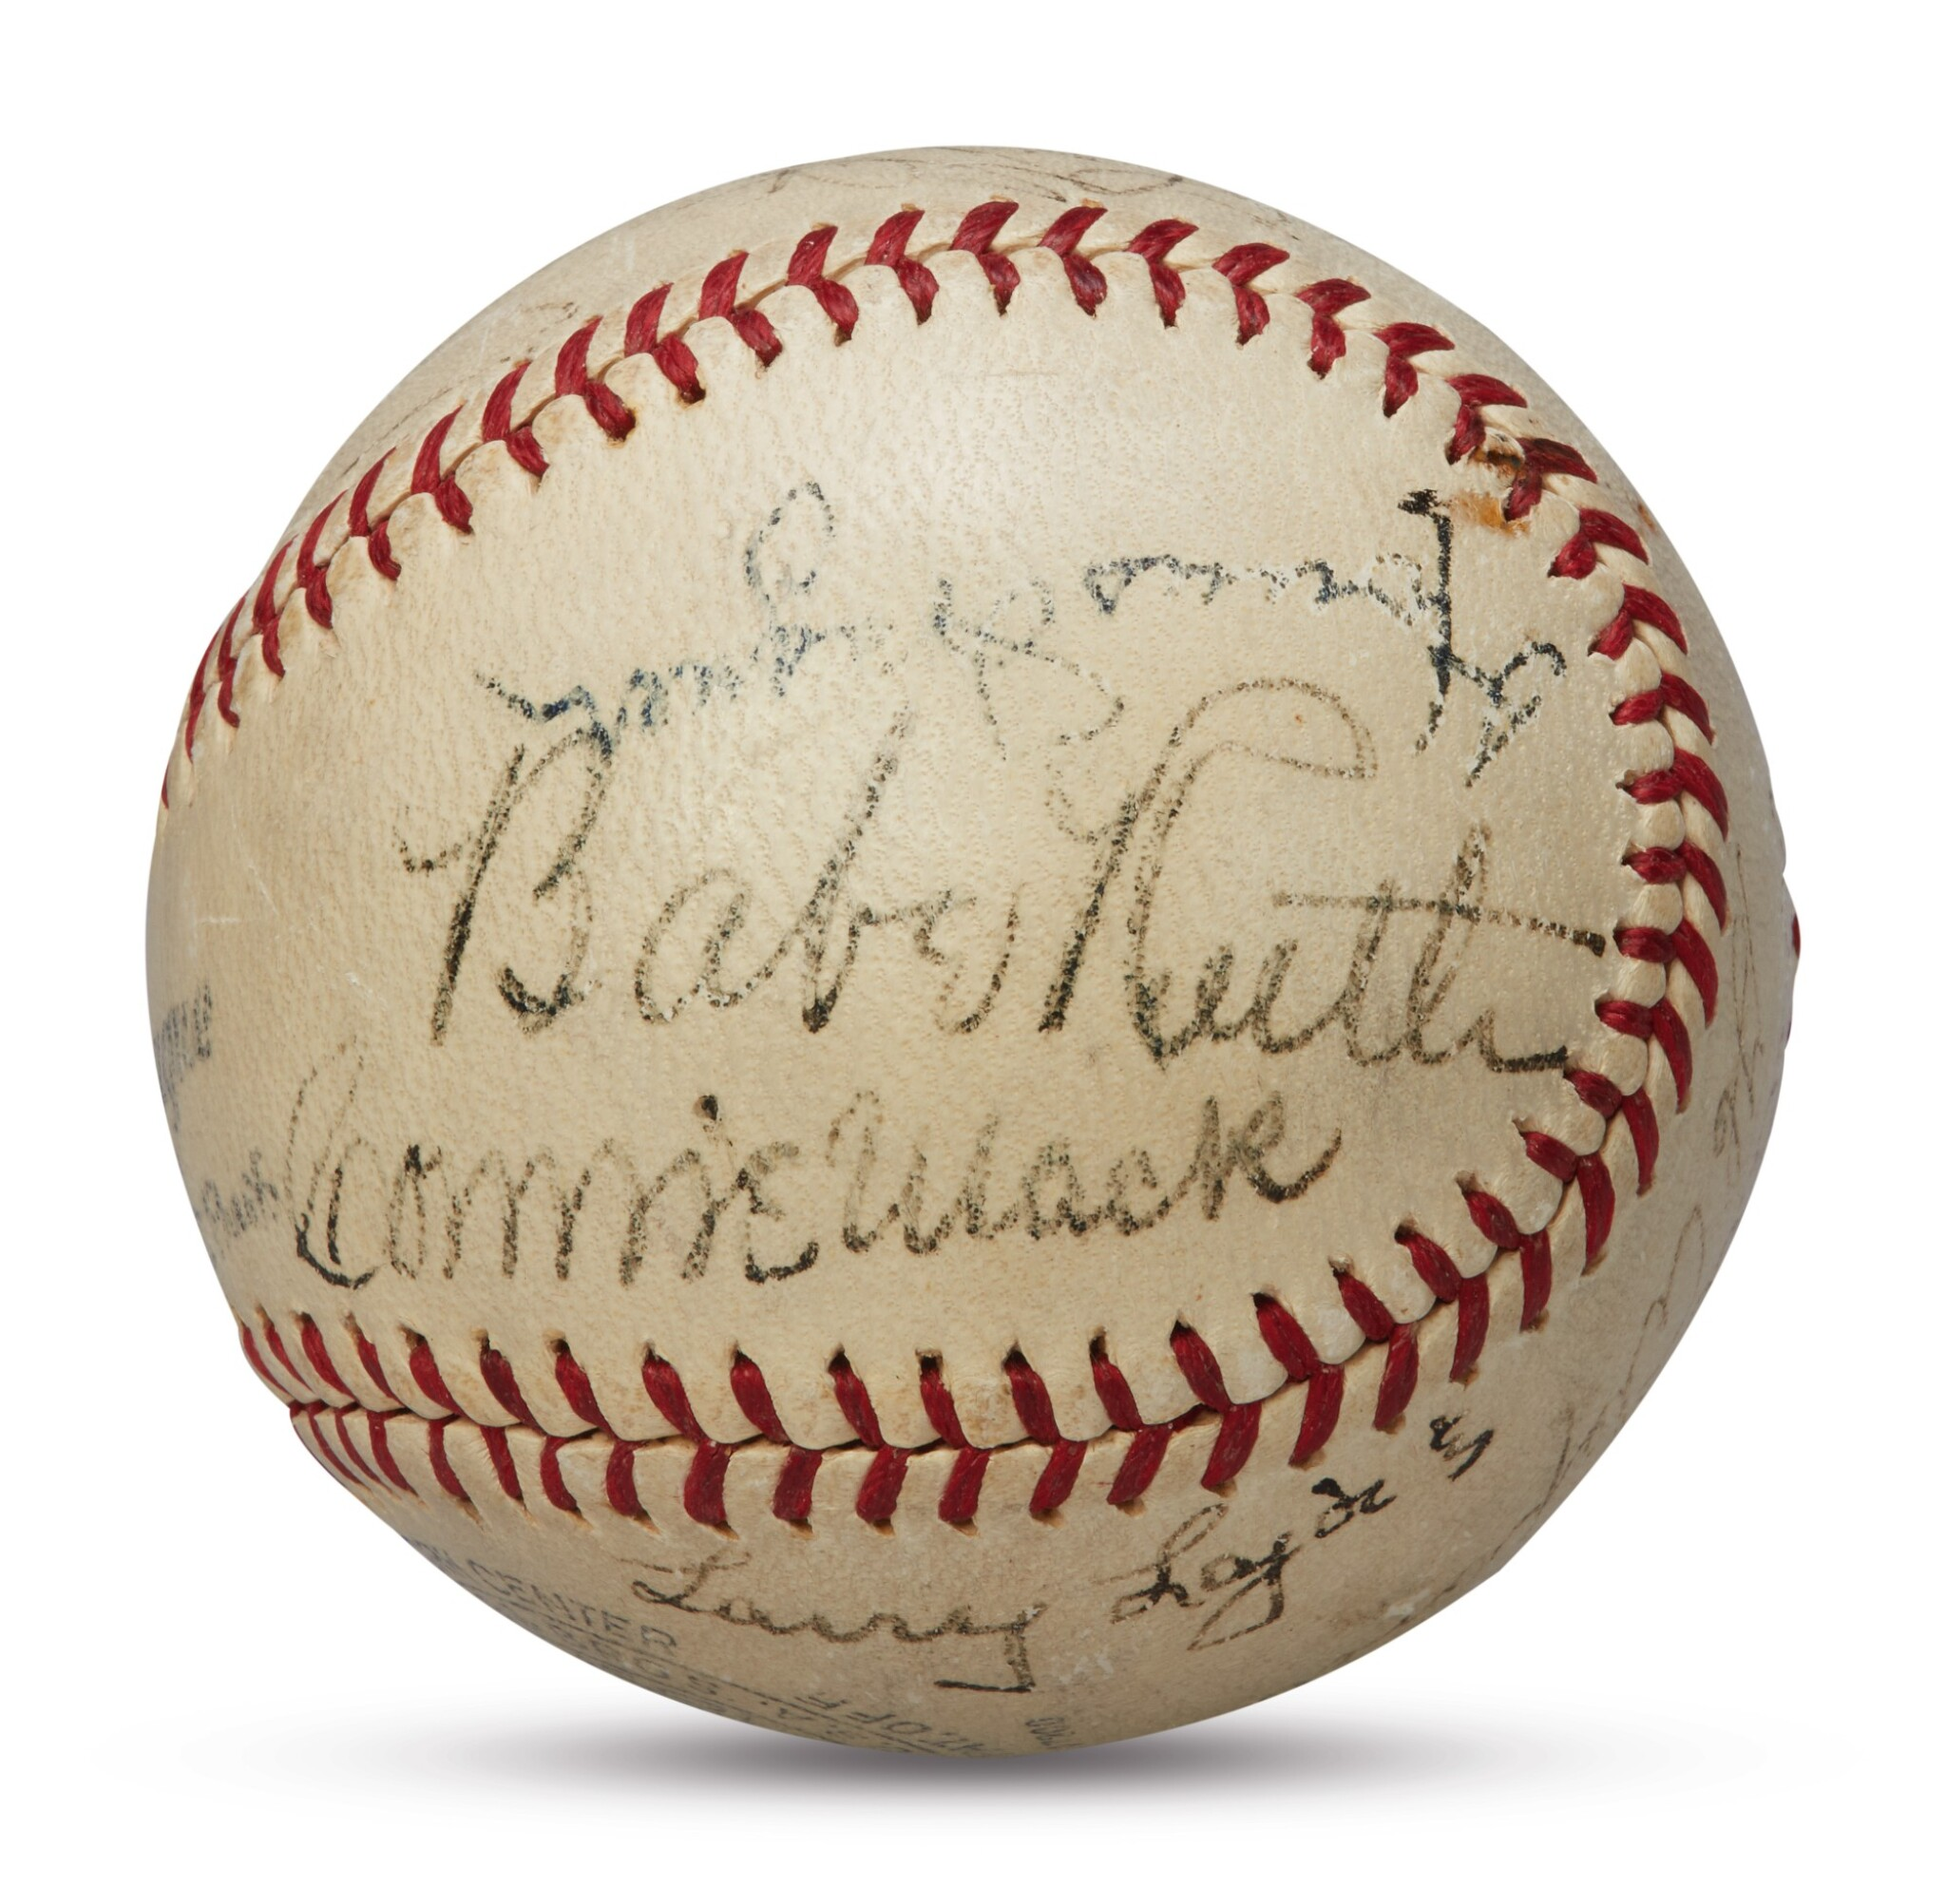 View full screen - View 1 of Lot 127. Baseball Hall of Fame   A signed baseball worthy of the Hall of Fame.